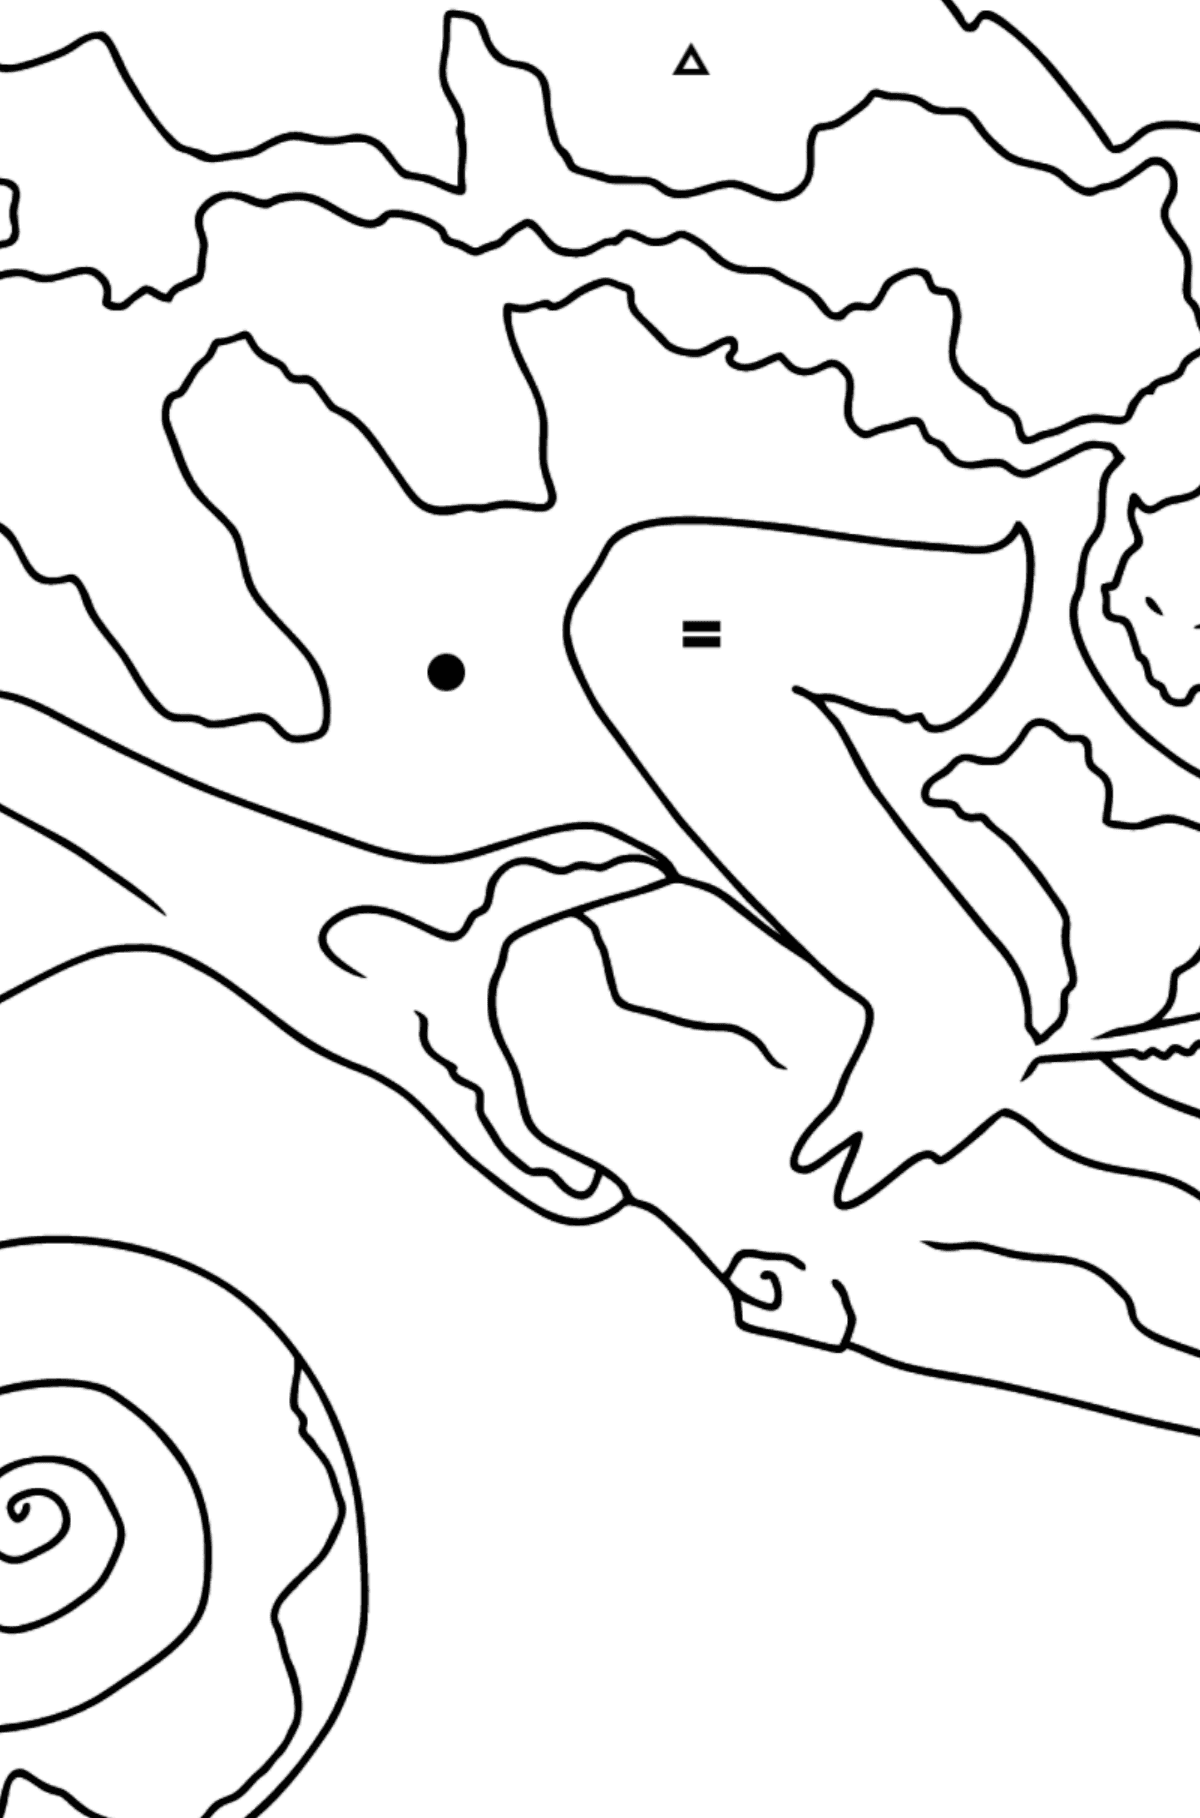 Coloring Page - A Chameleon is Having a Rest - Coloring by Symbols for Kids